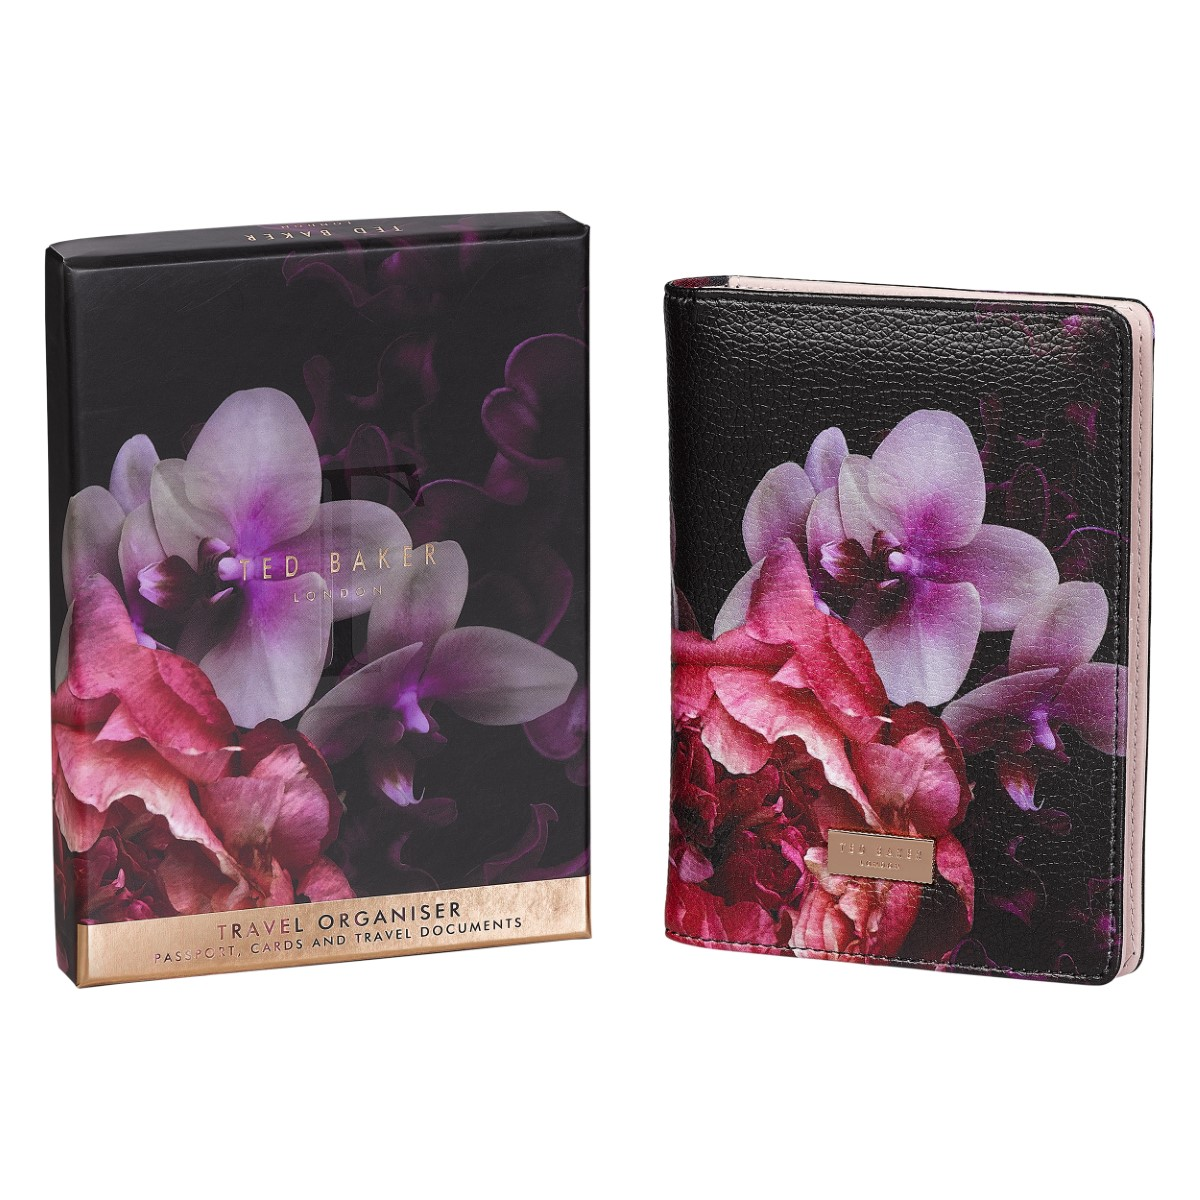 Ted Baker Travel Document Holder Black Splendour